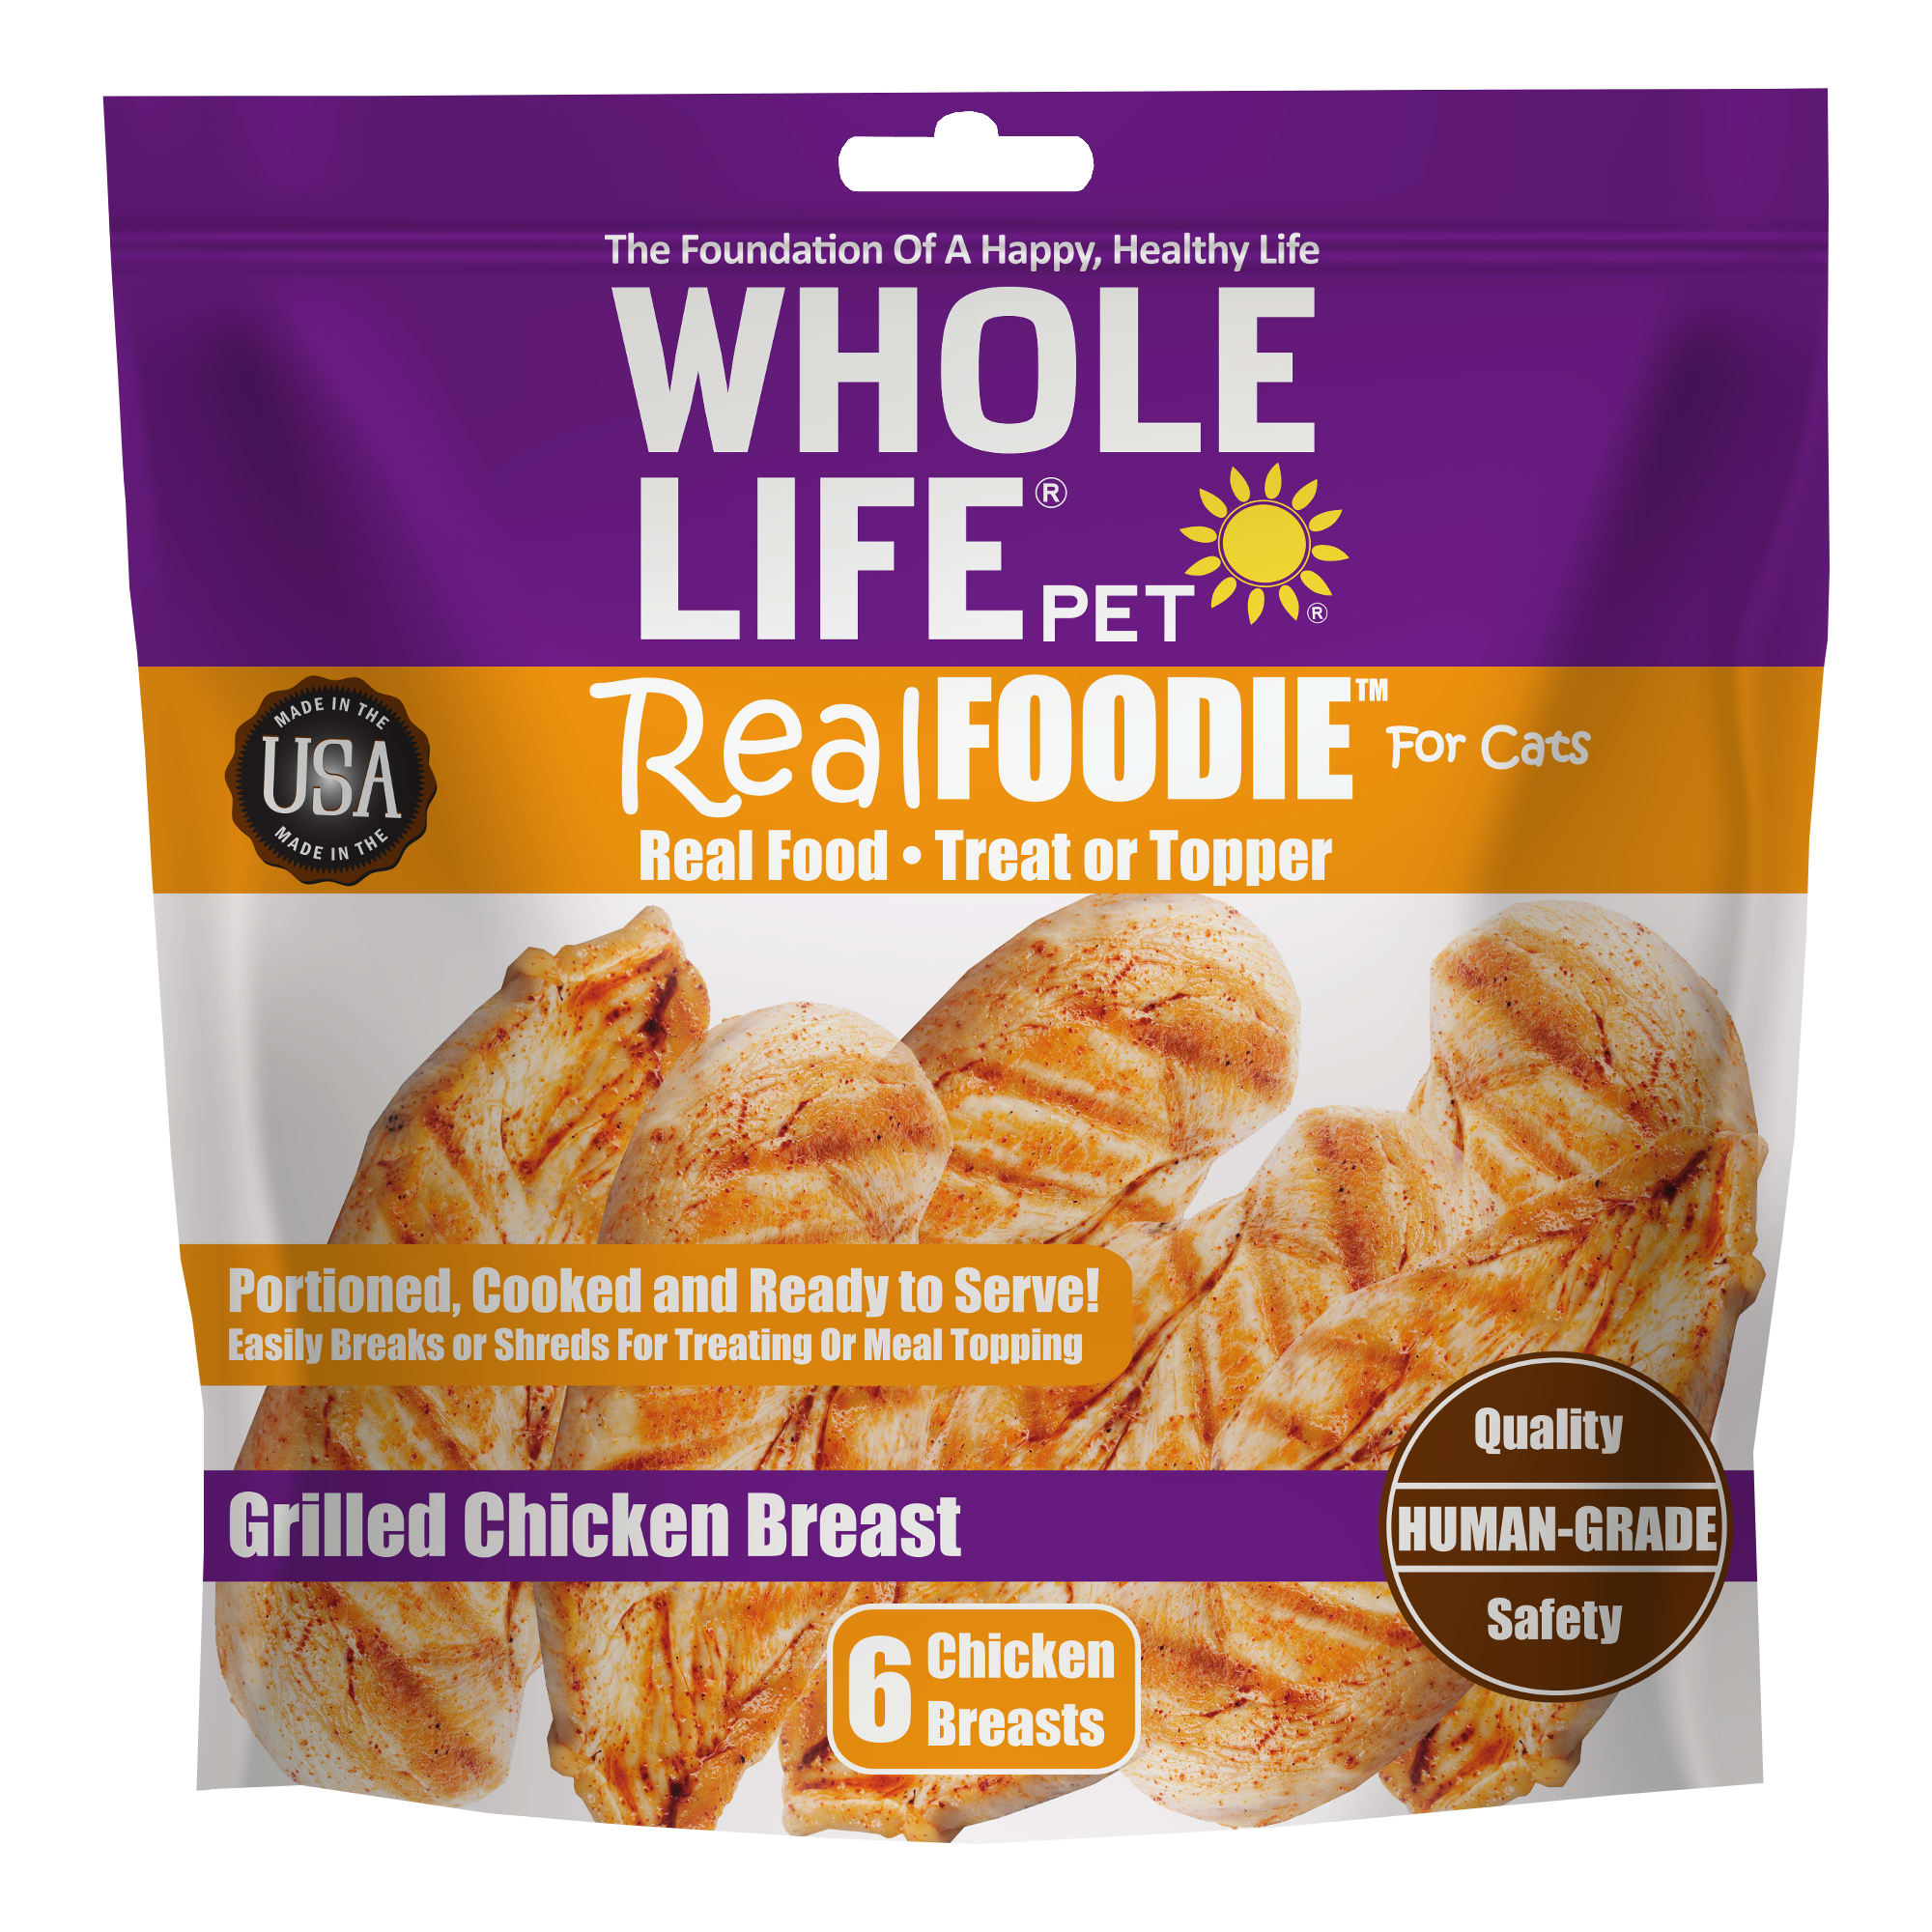 Whole Life Pet Real Foodie Grilled Chicken Breast Cat Treats, Count of 6, 4 IN